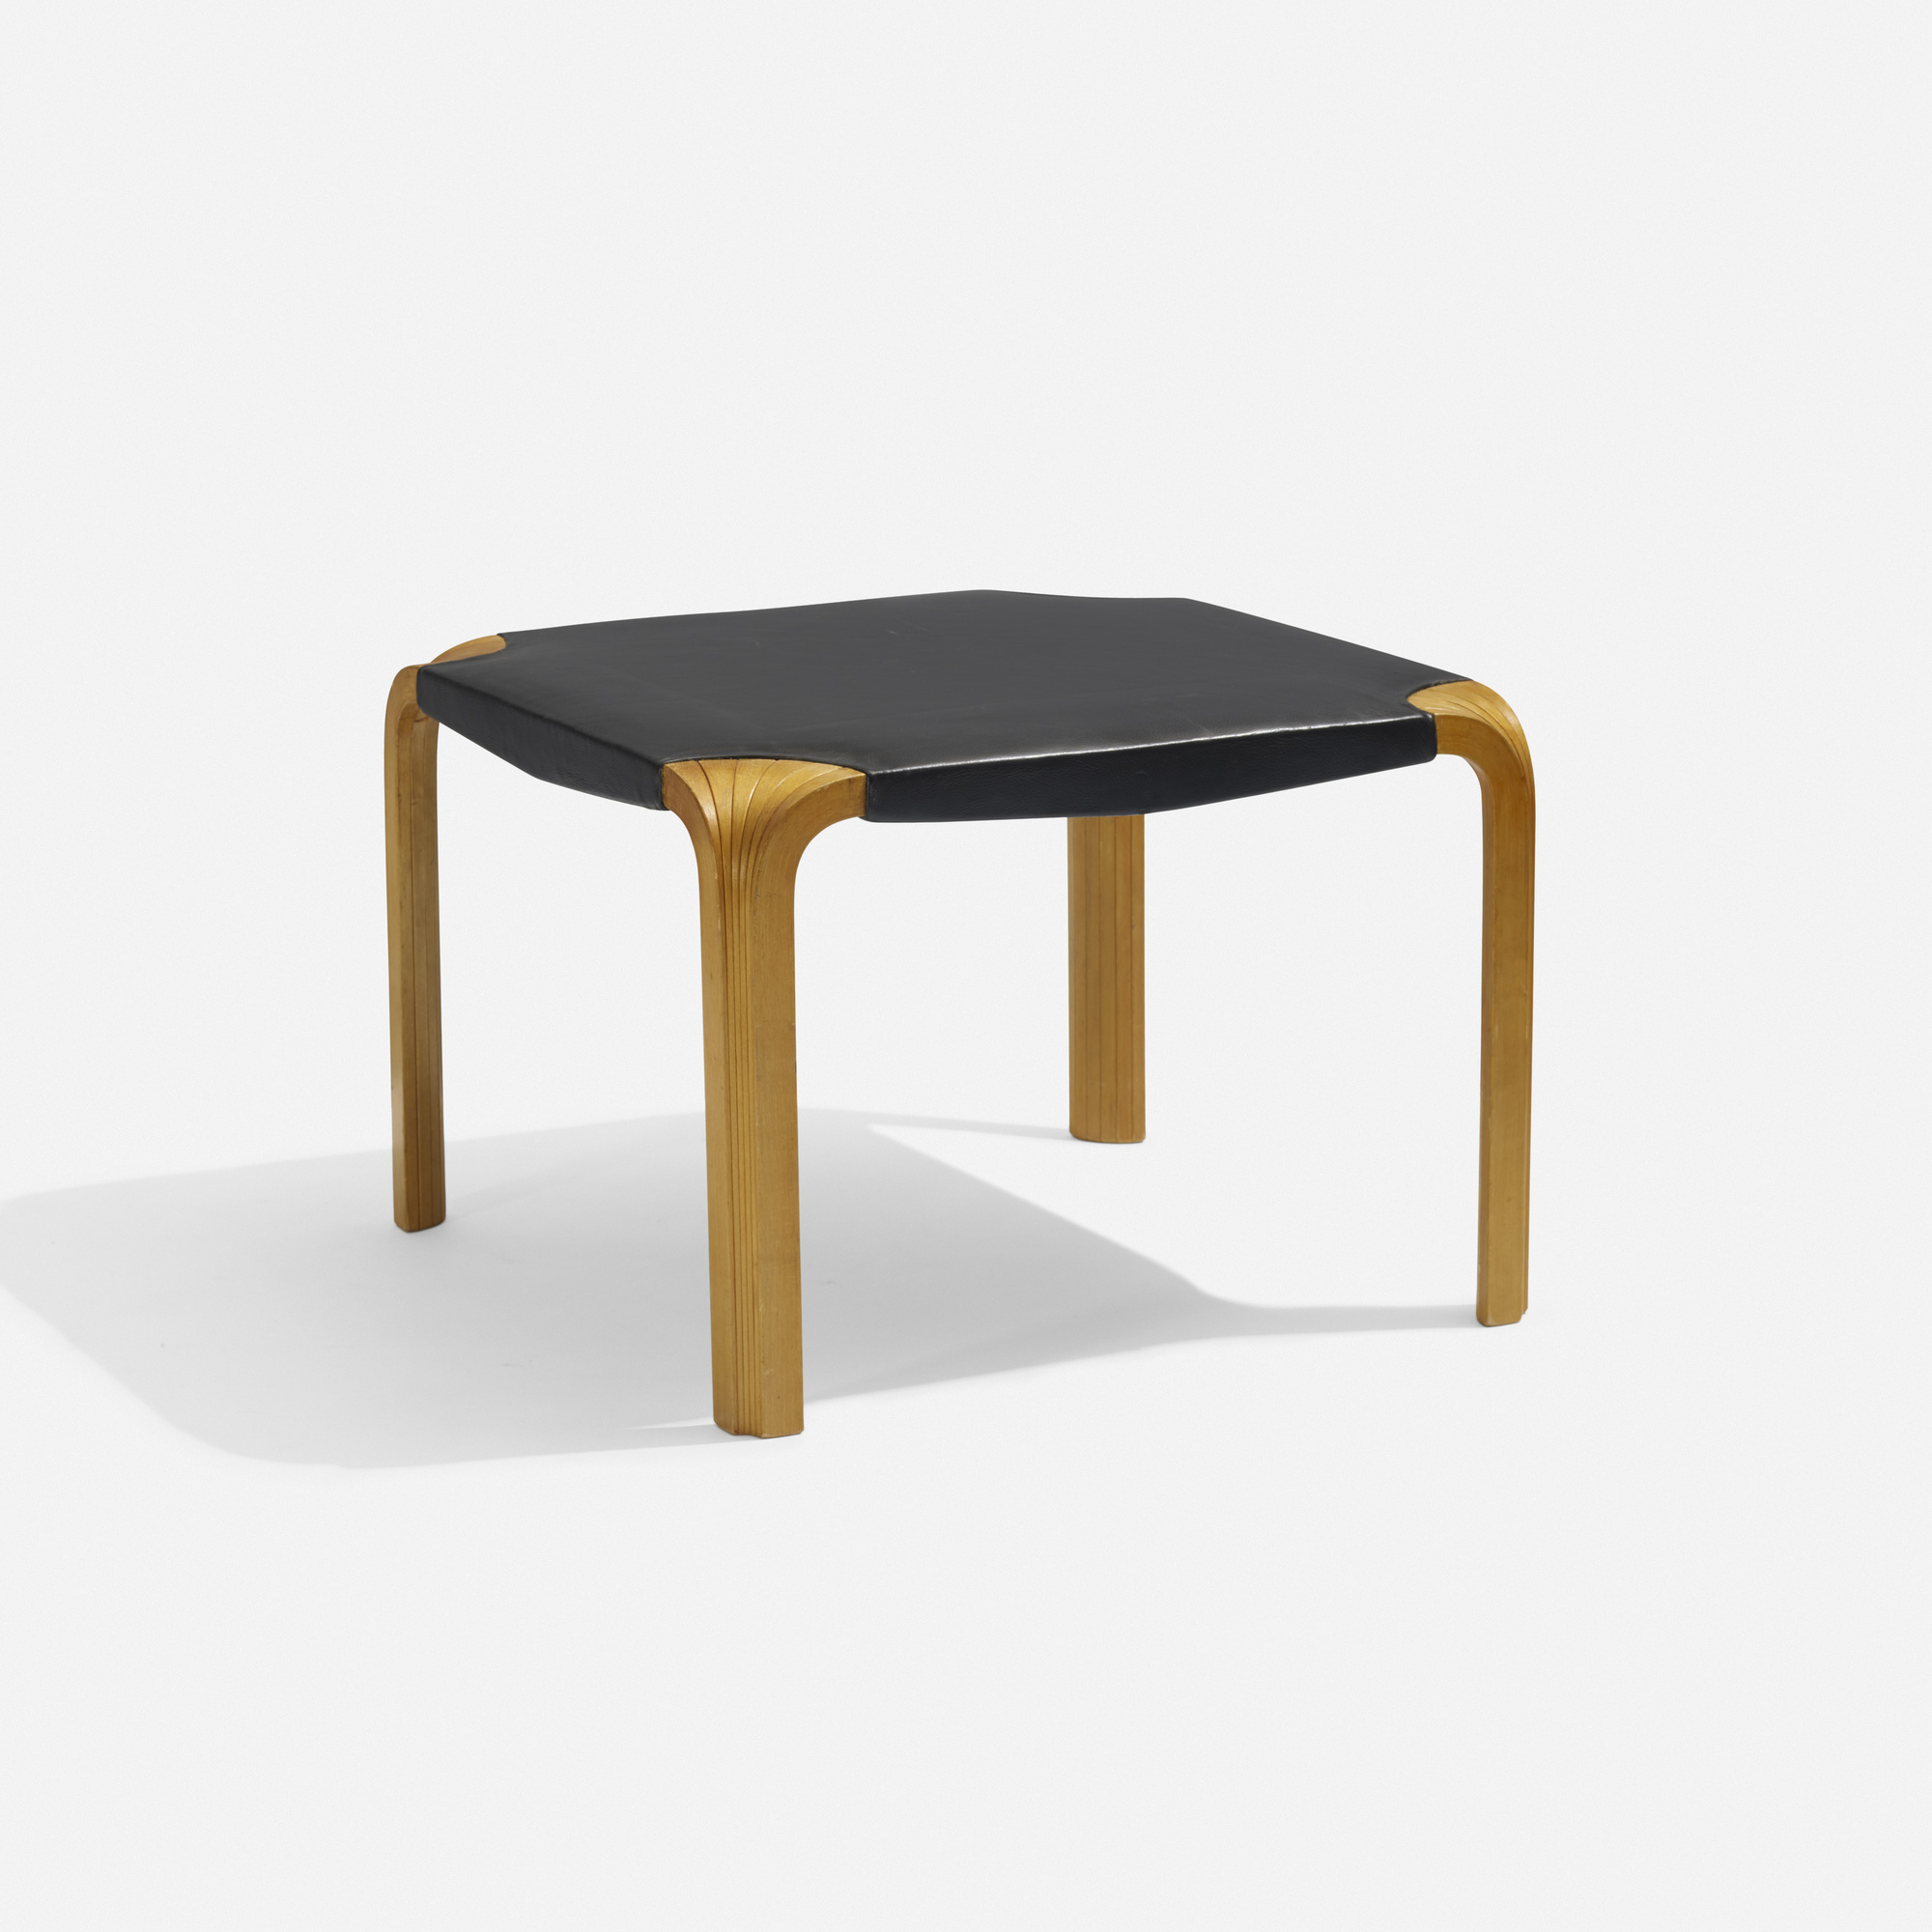 323 alvar aalto x leg table scandinavian design 18 may 2017 323 alvar aalto x leg table 1 of 2 watchthetrailerfo